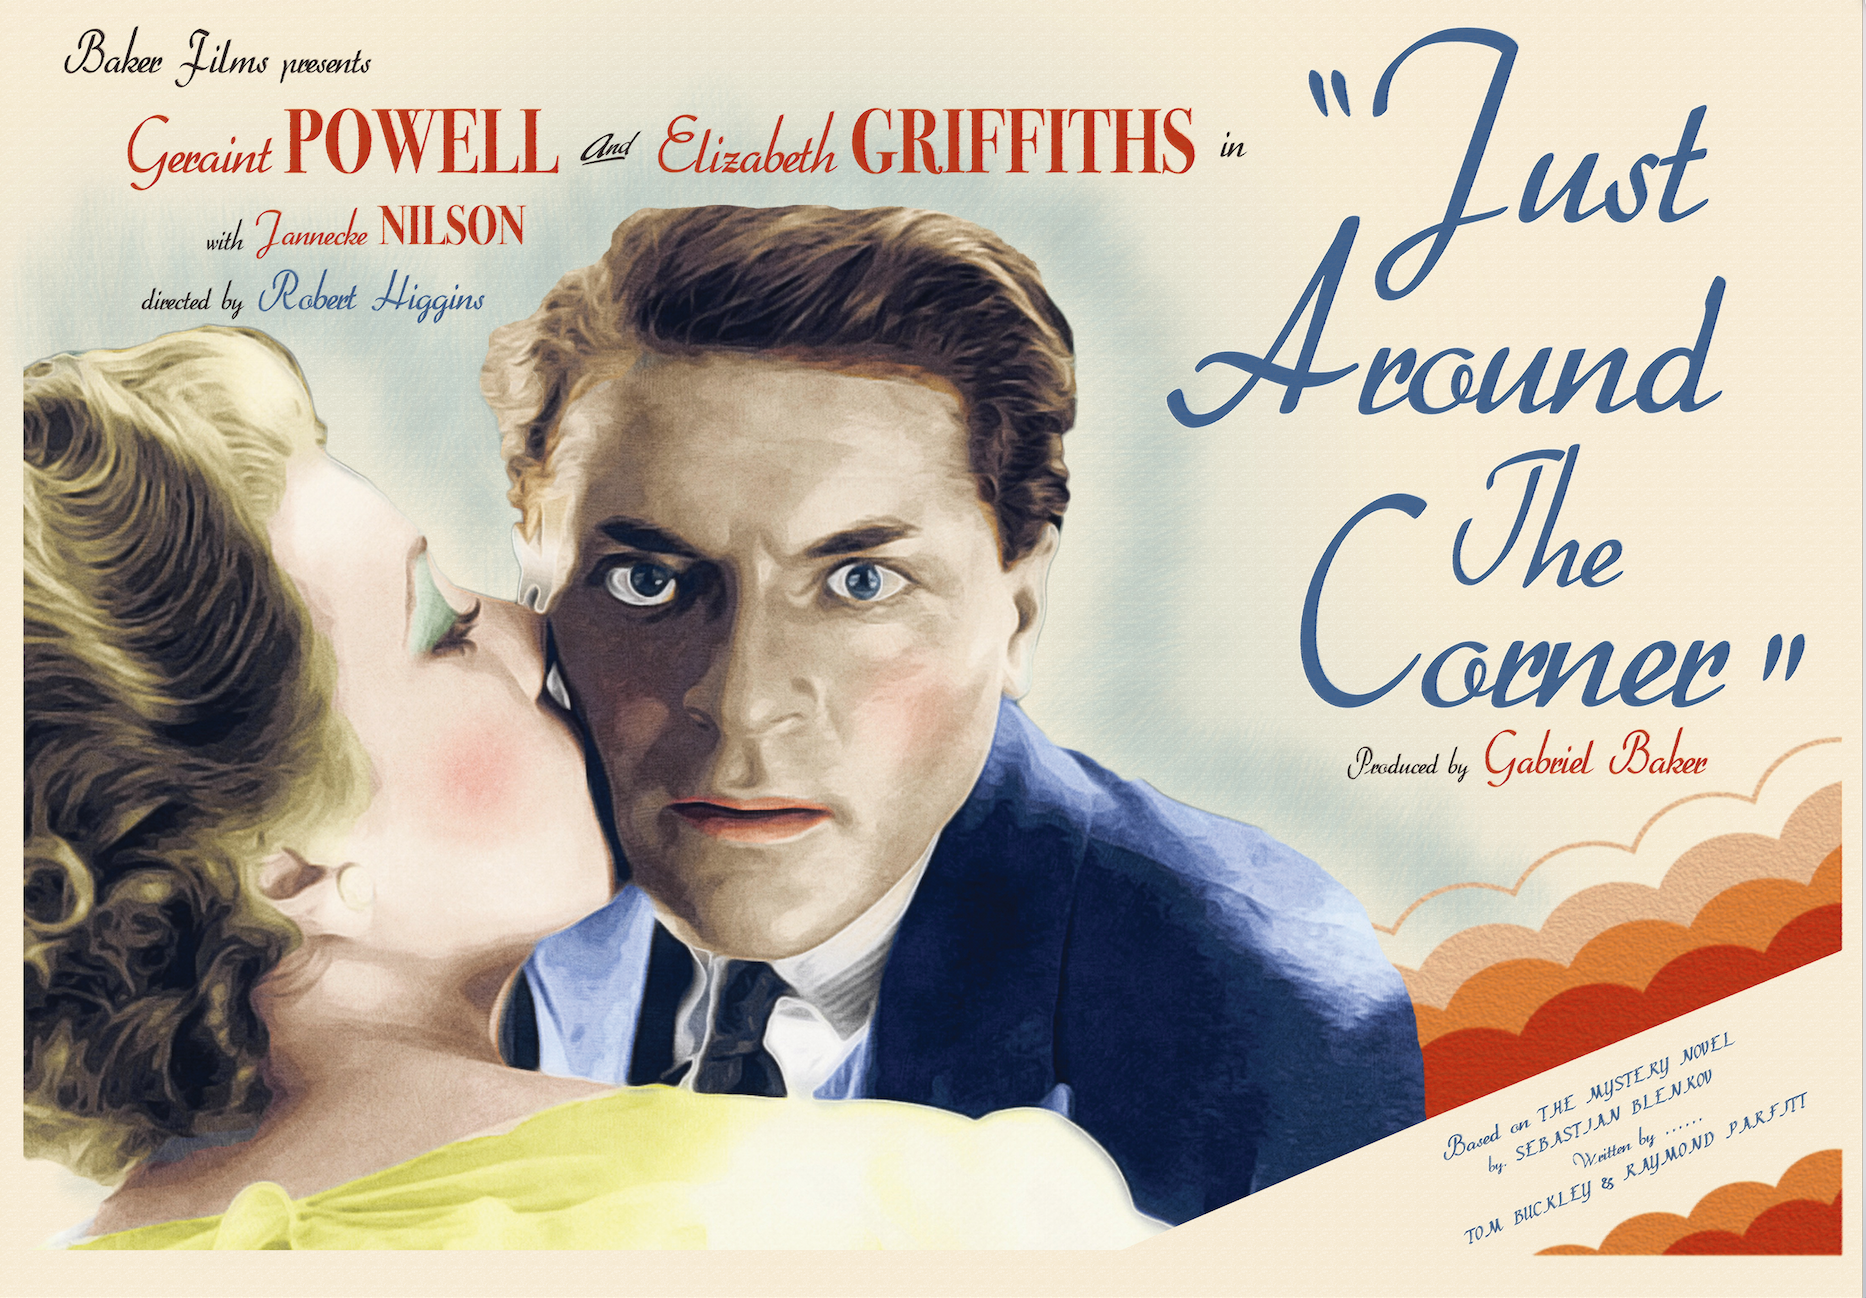 1940s Fictional Film Poster 8